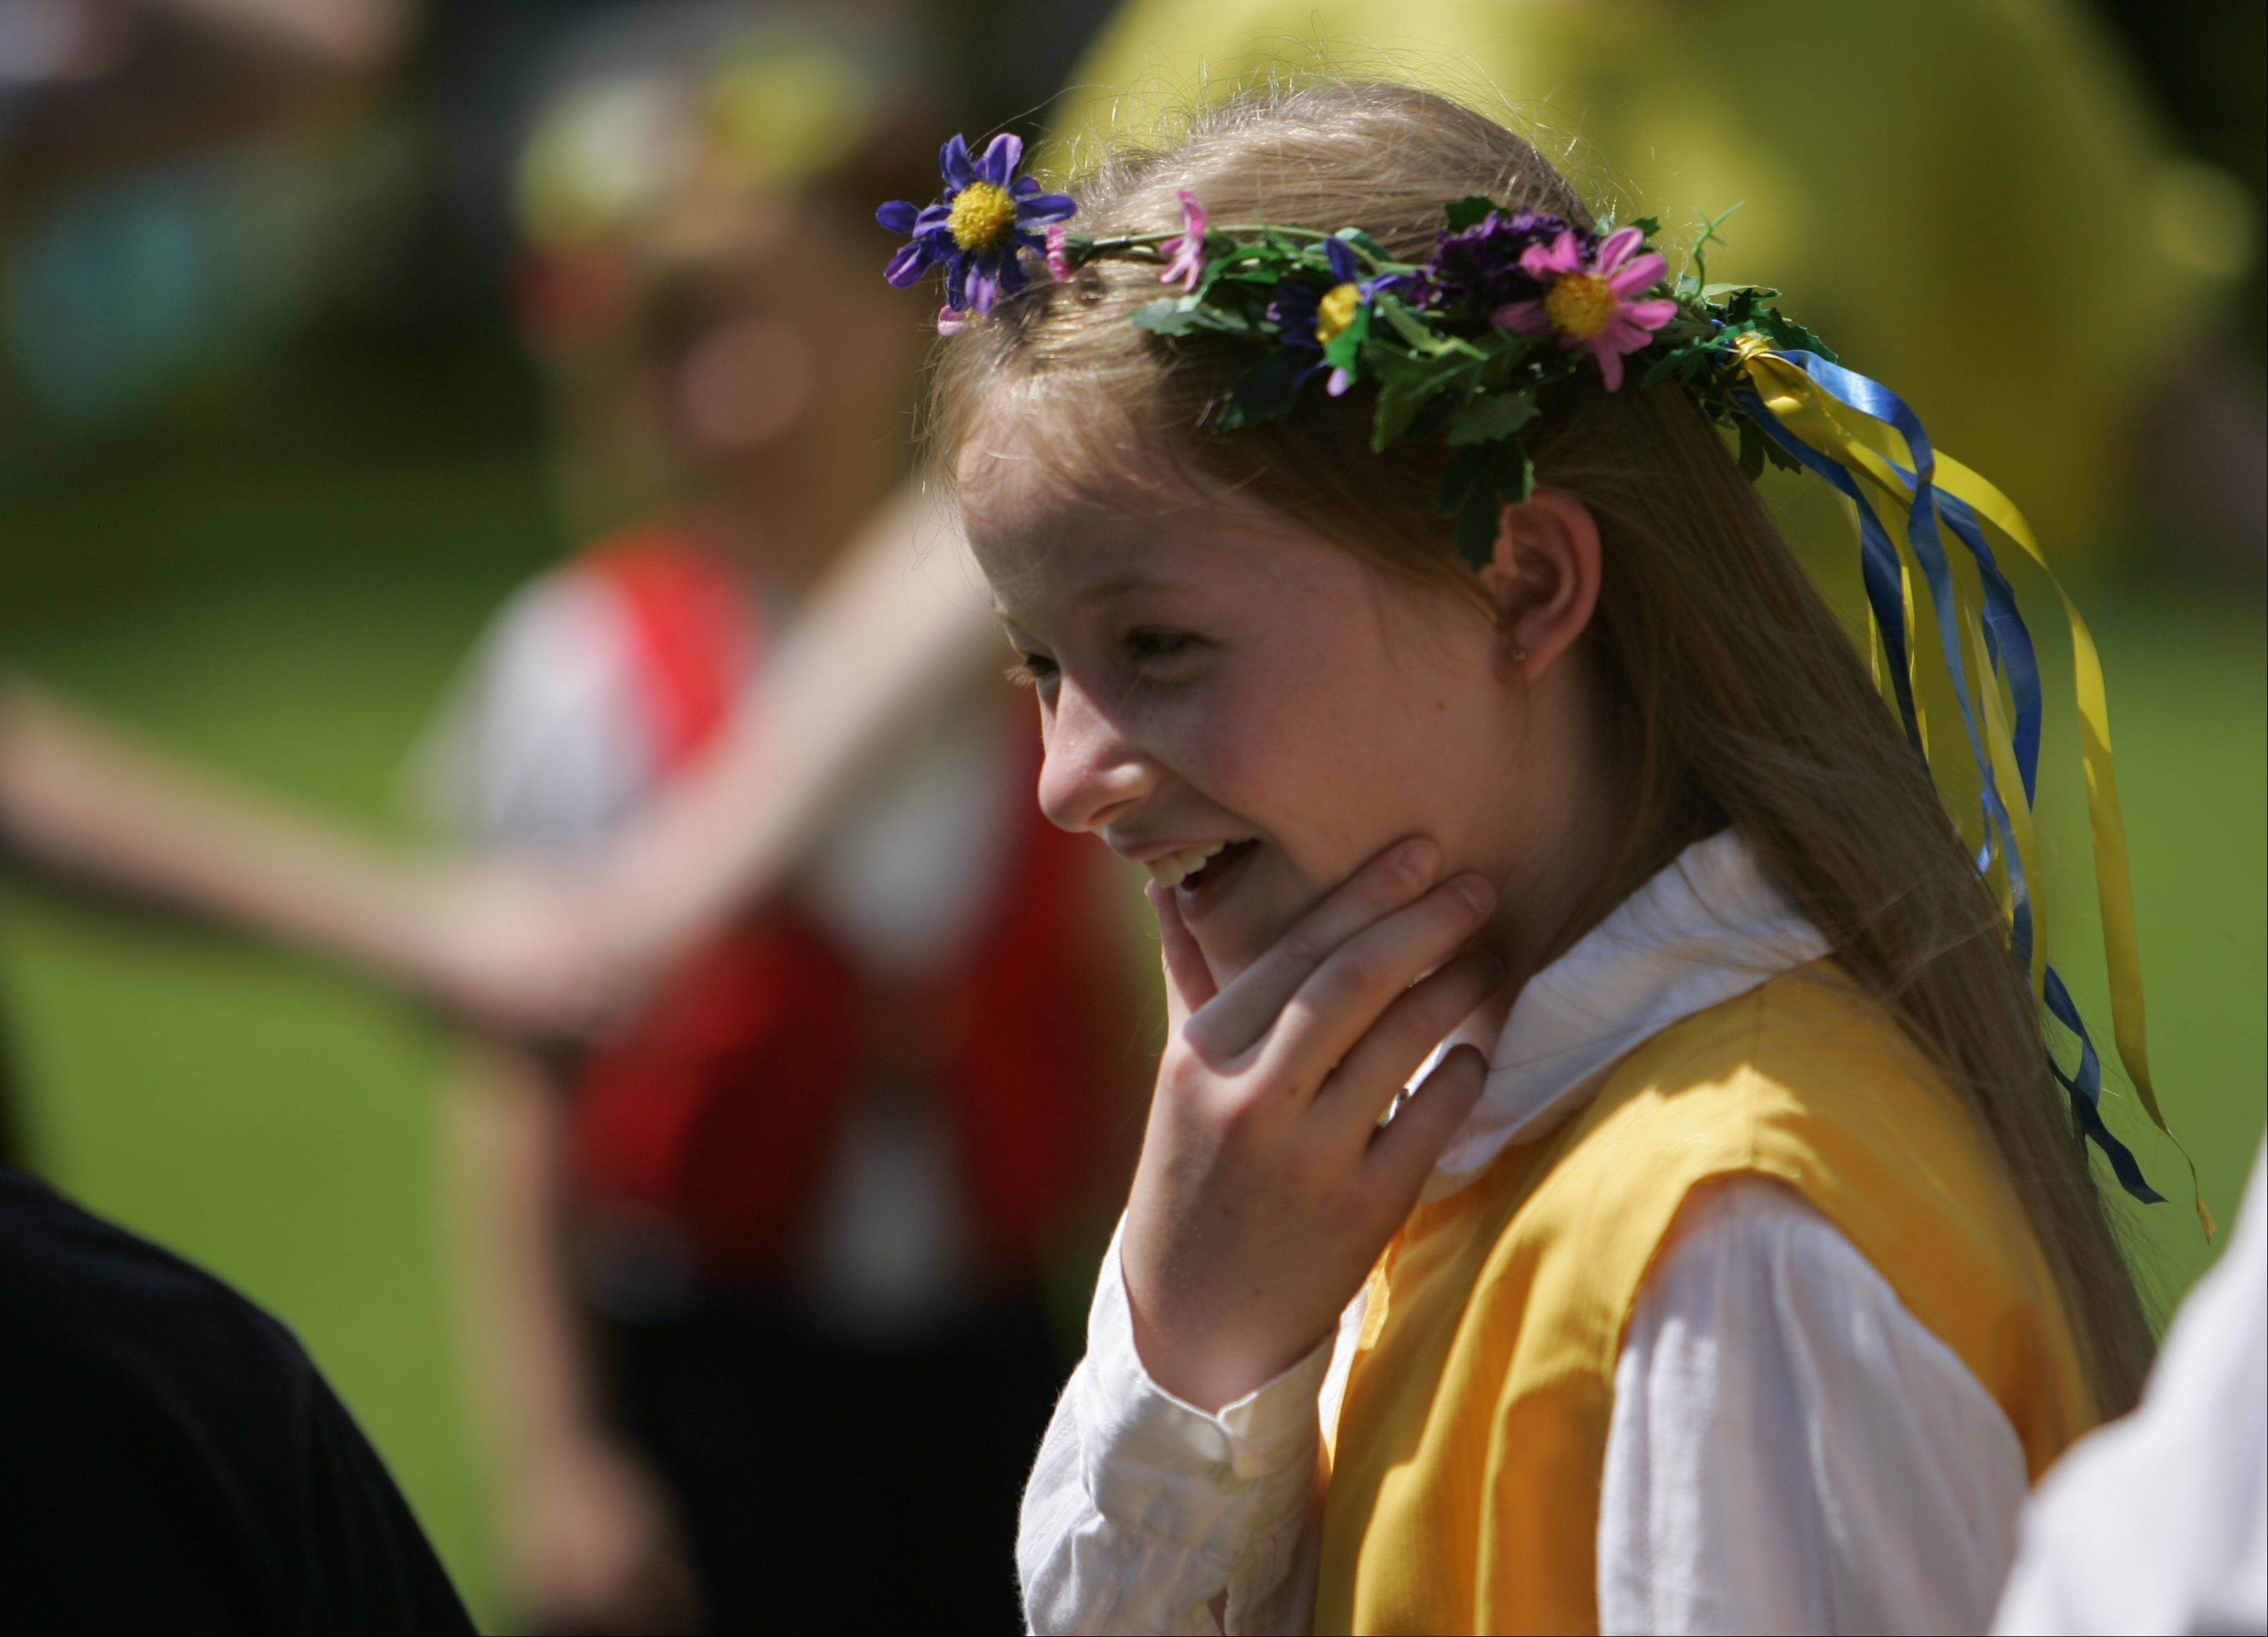 Organizers of the Scandinavian Midsommar Celebration at Vasa Park in South Elgin hope to pass traditions down to younger generations.